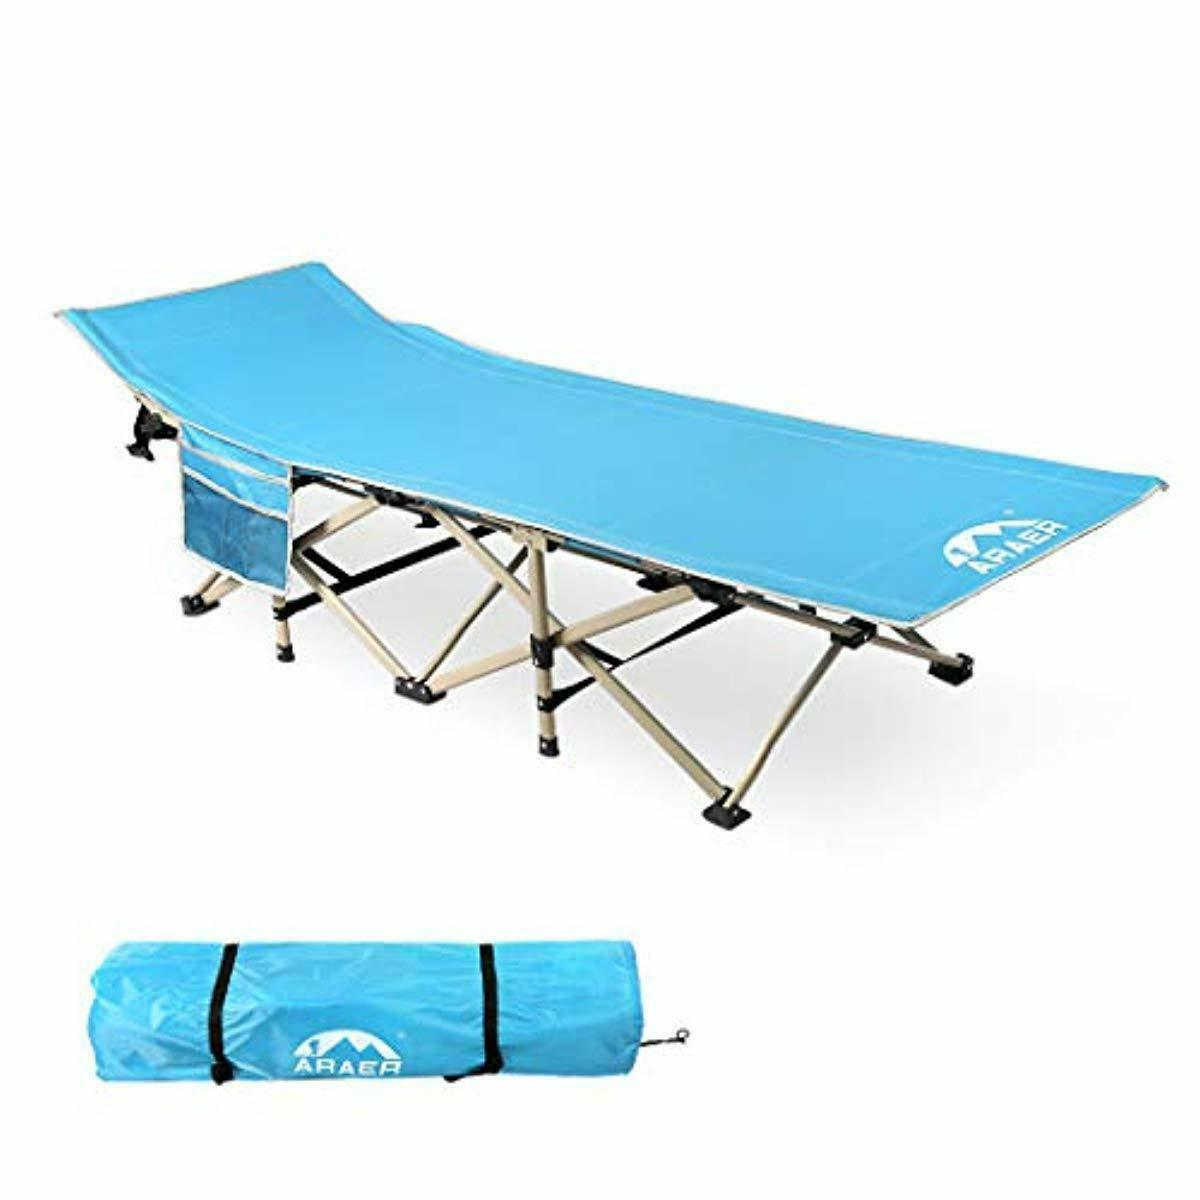 ARAER Camping Cot, 450LBS(Max Load),  Portable Foldable Outdoor Bed with Carry  save 50%-75%off